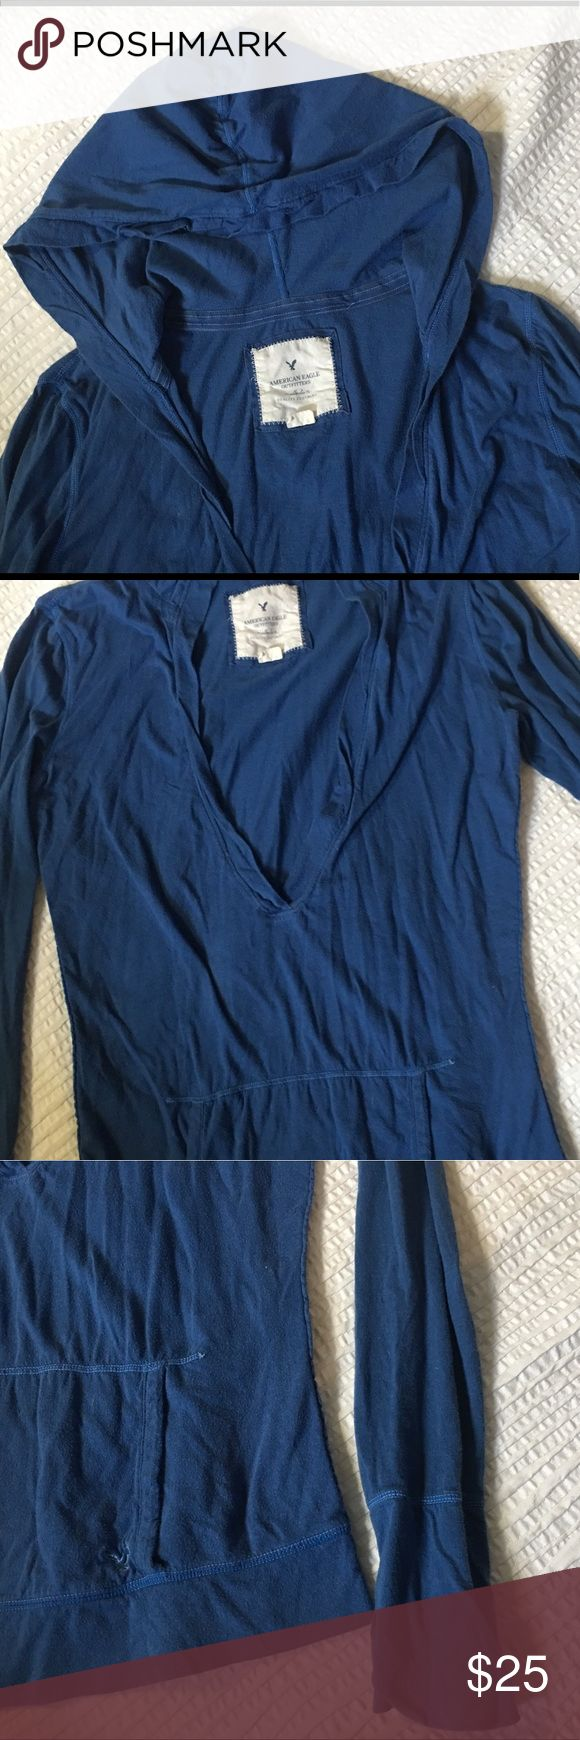 Women's AE hoodie long sleeve size M Super long sleeve  Great blue color Deep V neck Light weight material Extra long cuffs and lower hem White stitching Dropped waist length  I always wear these with skinny jeans or leggings and a white cami. Great for spring or summer mornings. American Eagle Outfitters Tops Tees - Long Sleeve